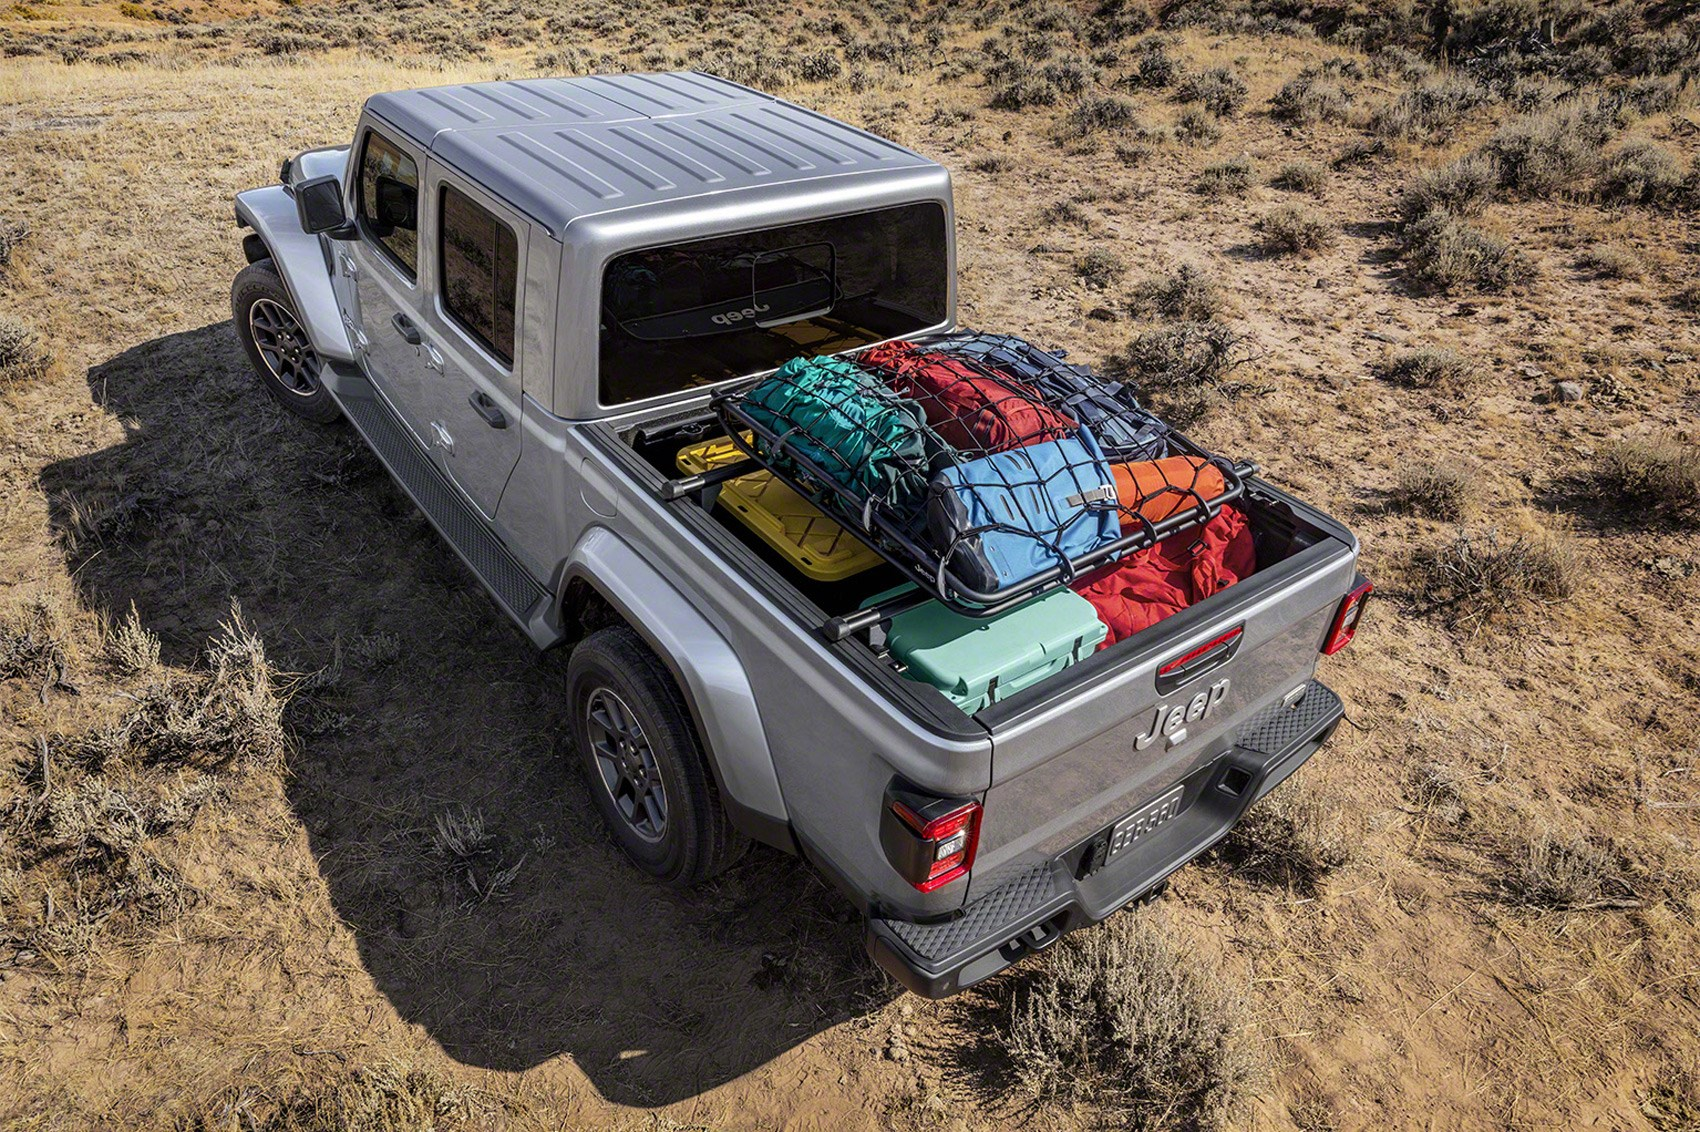 Gladiator, ready! New 2020 Jeep Gladiator pickup arrives ...